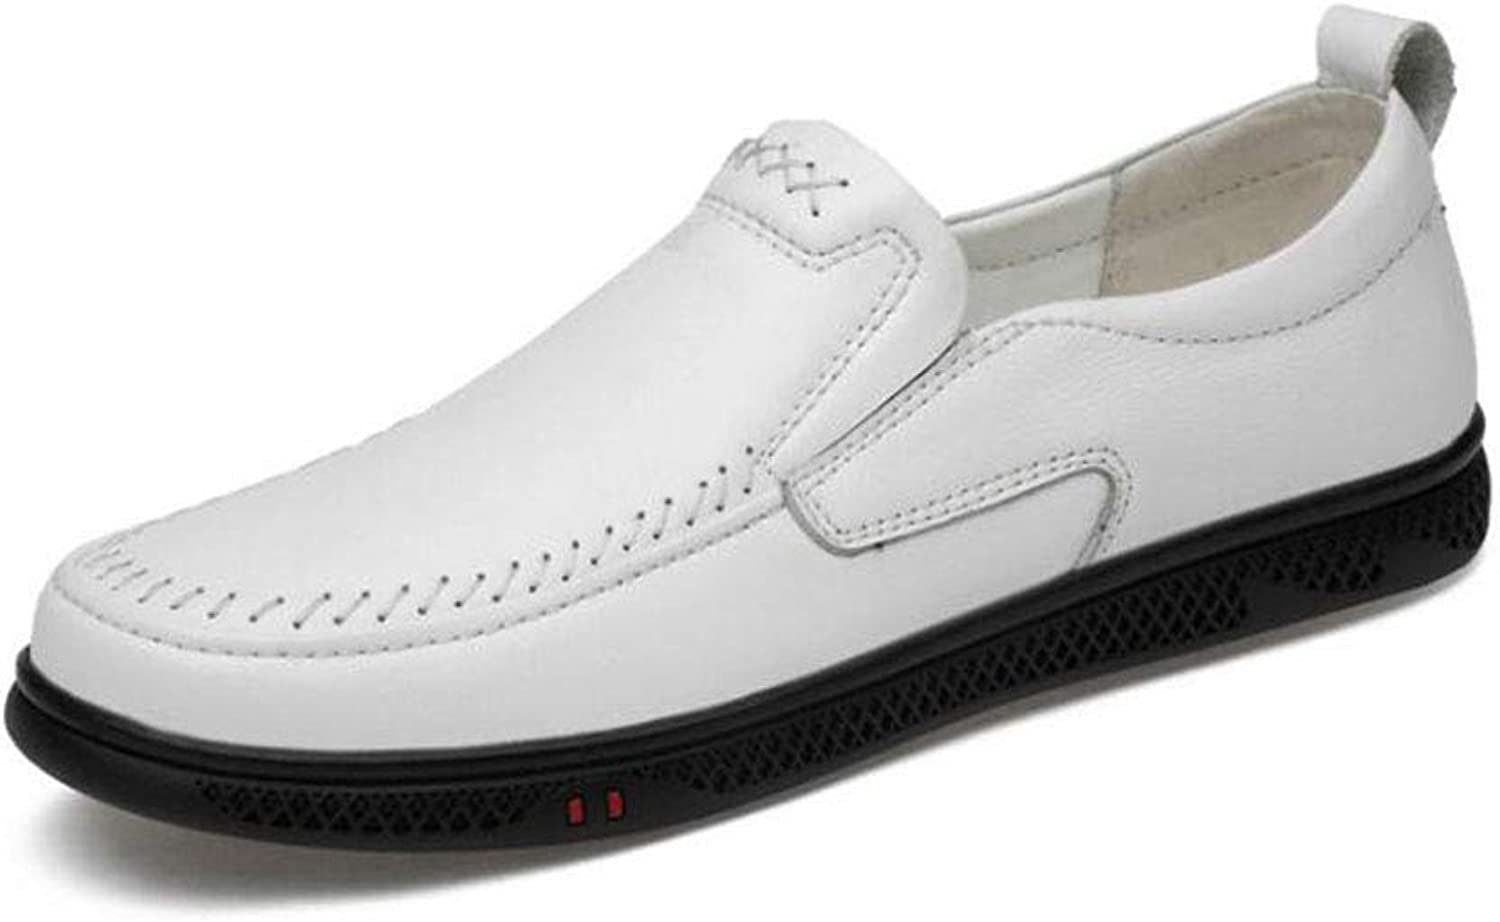 Hy Mens Casual schuhe, 2019 Frühjahr Frühjahr Frühjahr Neue Formal-Business-Schuhe, Hollow-Out, Mens Comfort Breathable Driving schuhe, Loafers & Slip-Ons,Weiß,37  02a09b